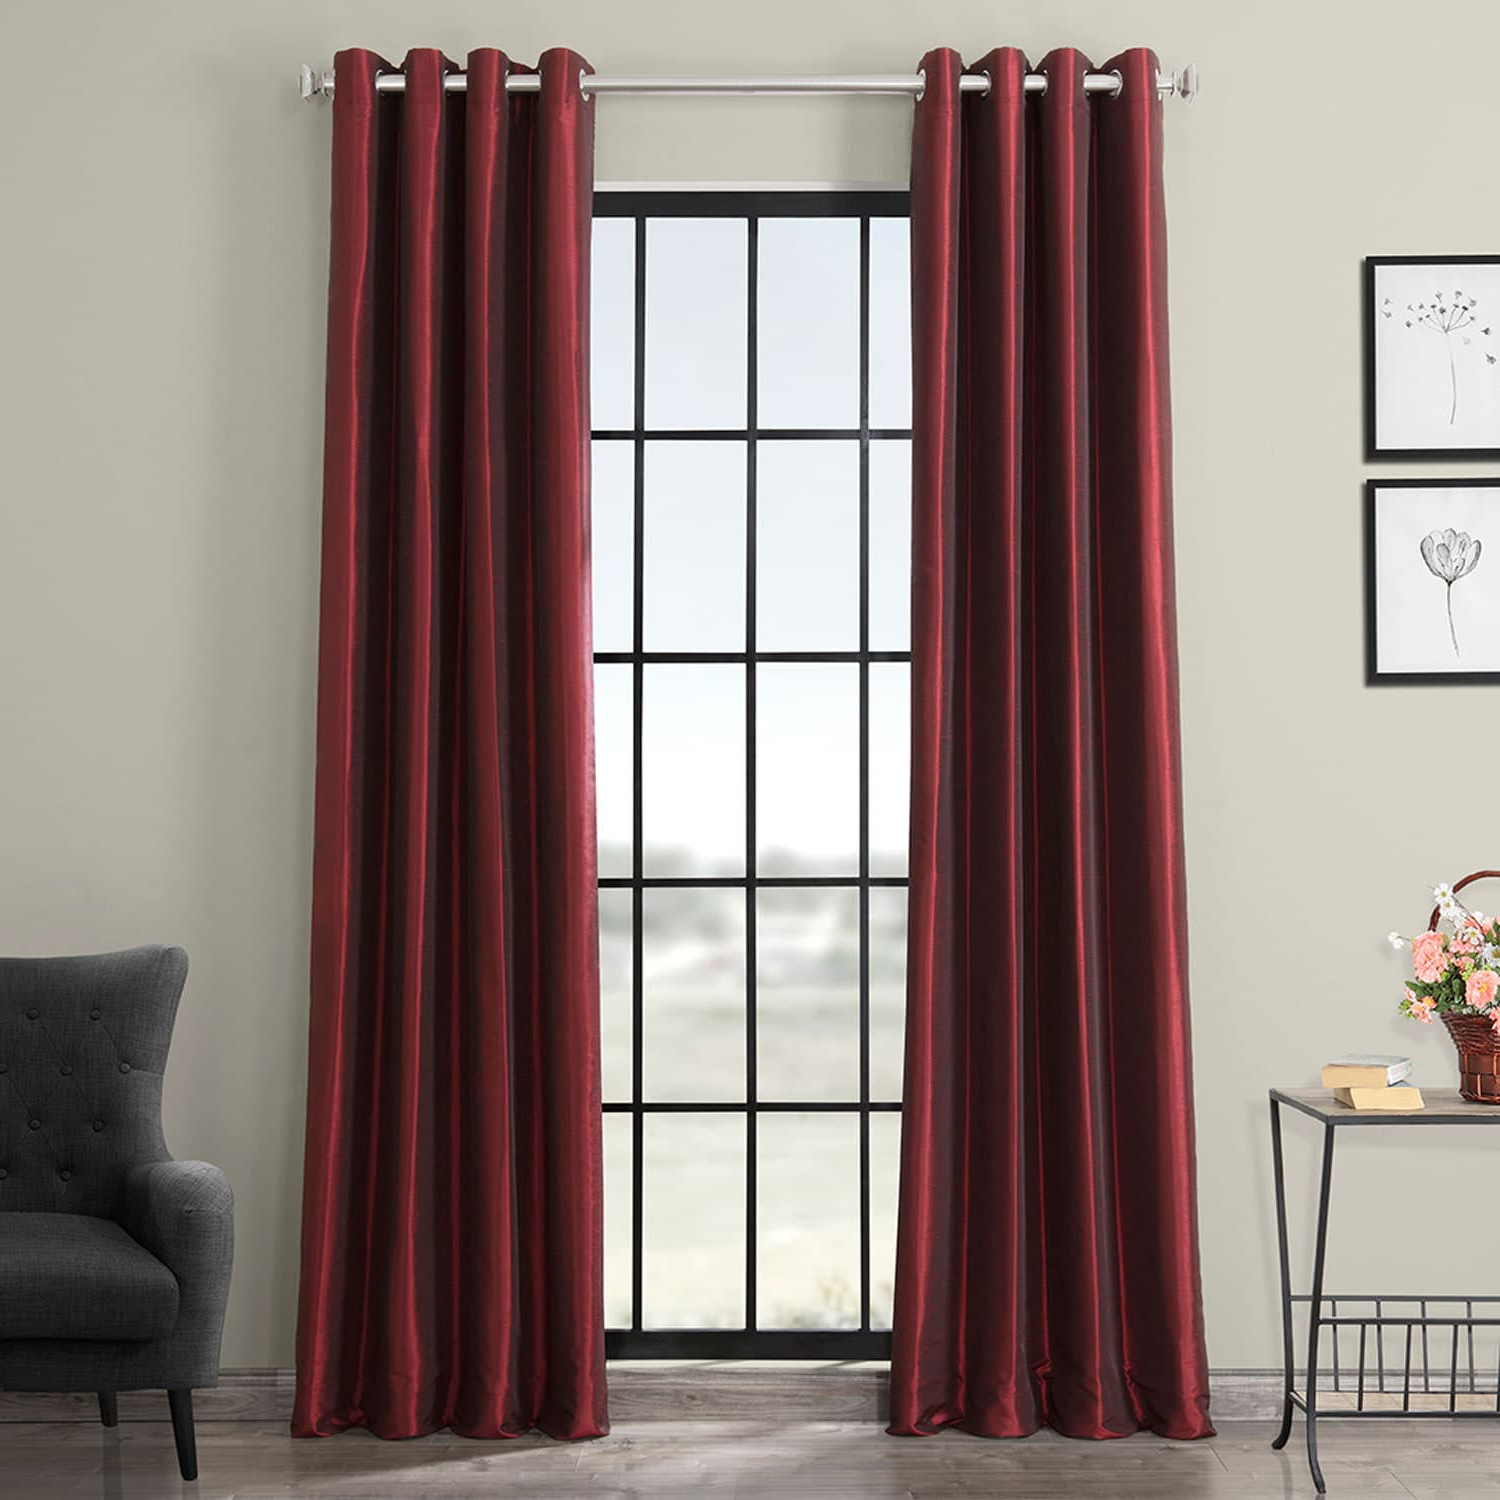 Most Current Off White Vintage Faux Textured Silk Curtains With Ruby Grommet Blackout Vintage Textured Faux Dupioni Silk Curtain (View 12 of 20)